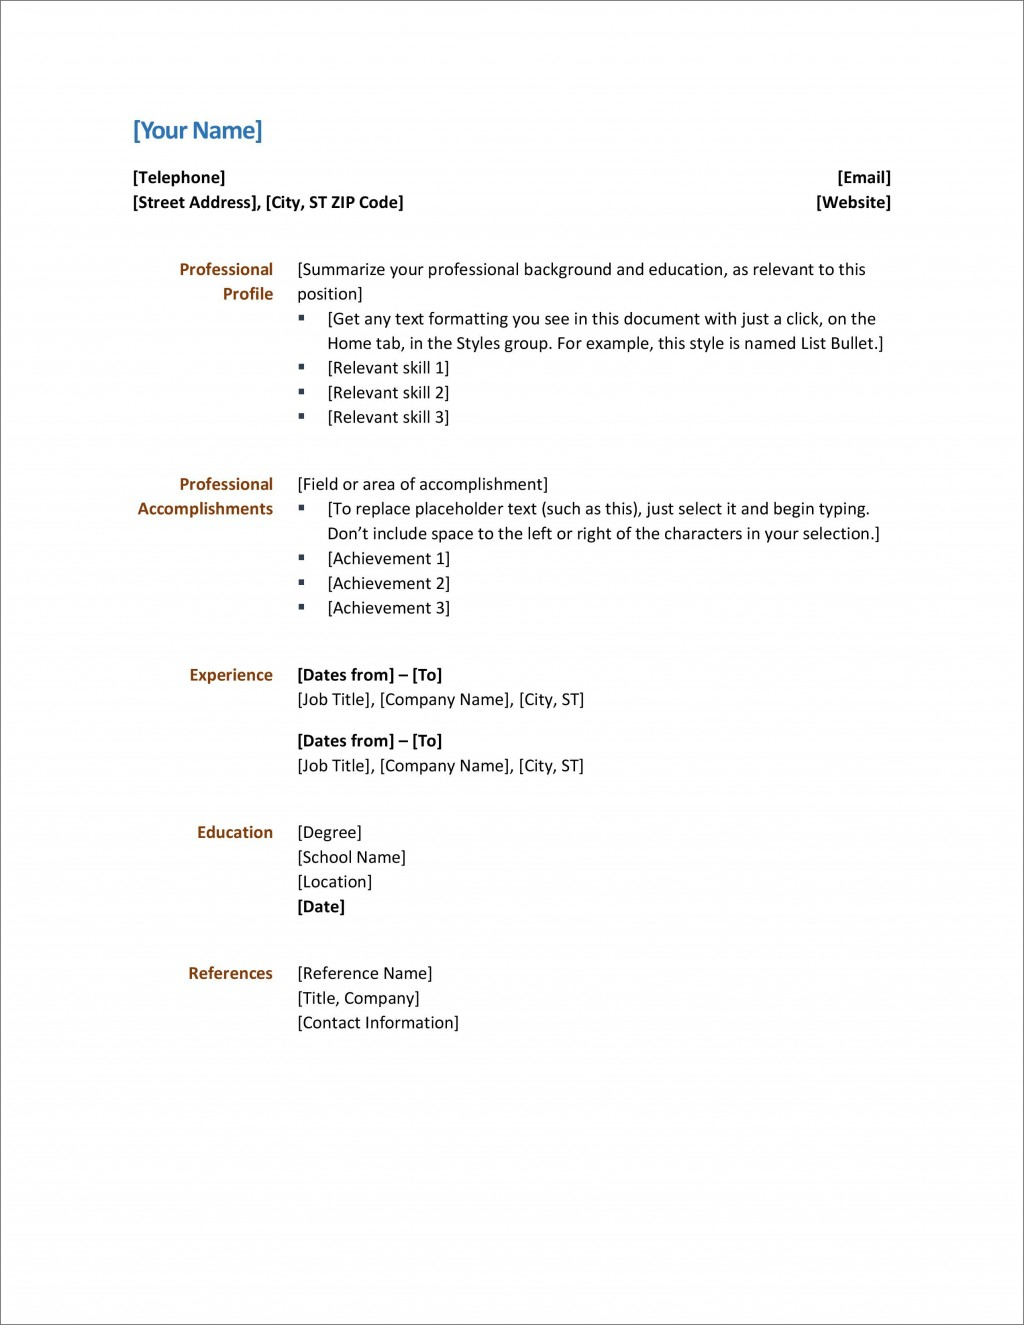 005 Rare Simple Resume Template Download In M Word Image Large